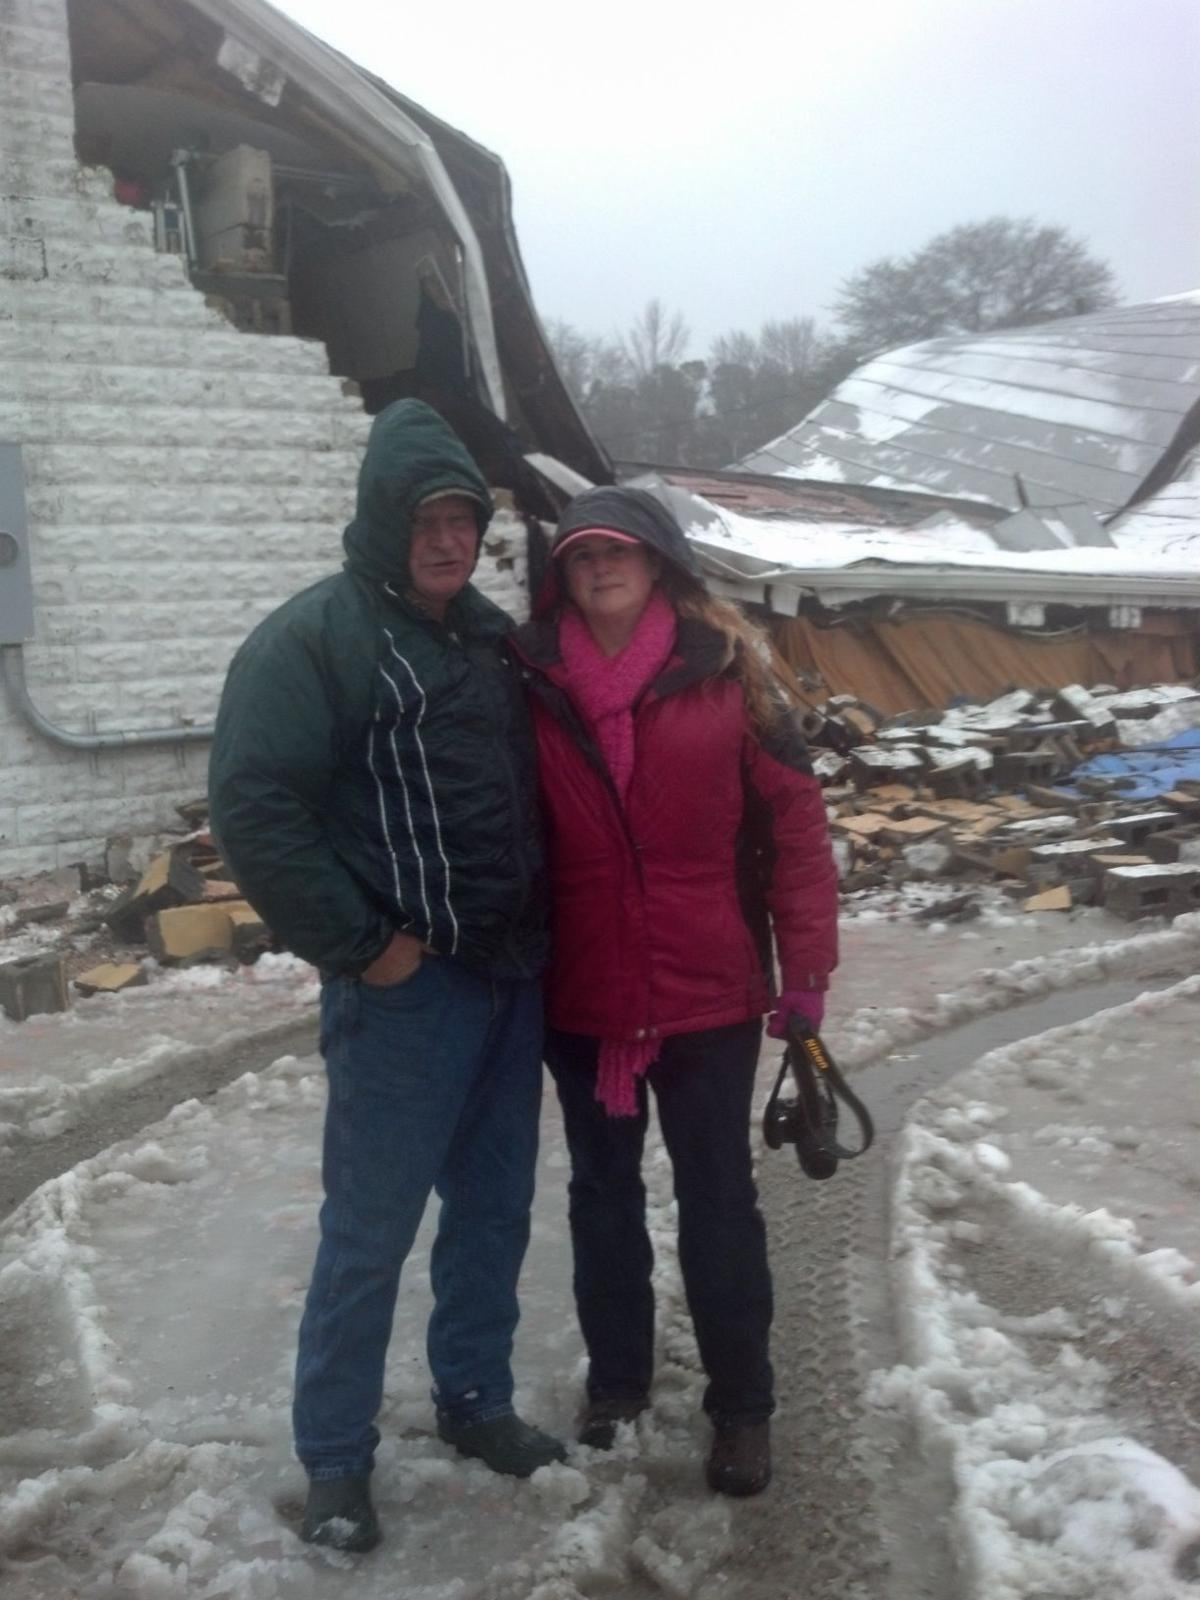 Roof collapses on historic Donk's Theater, known as